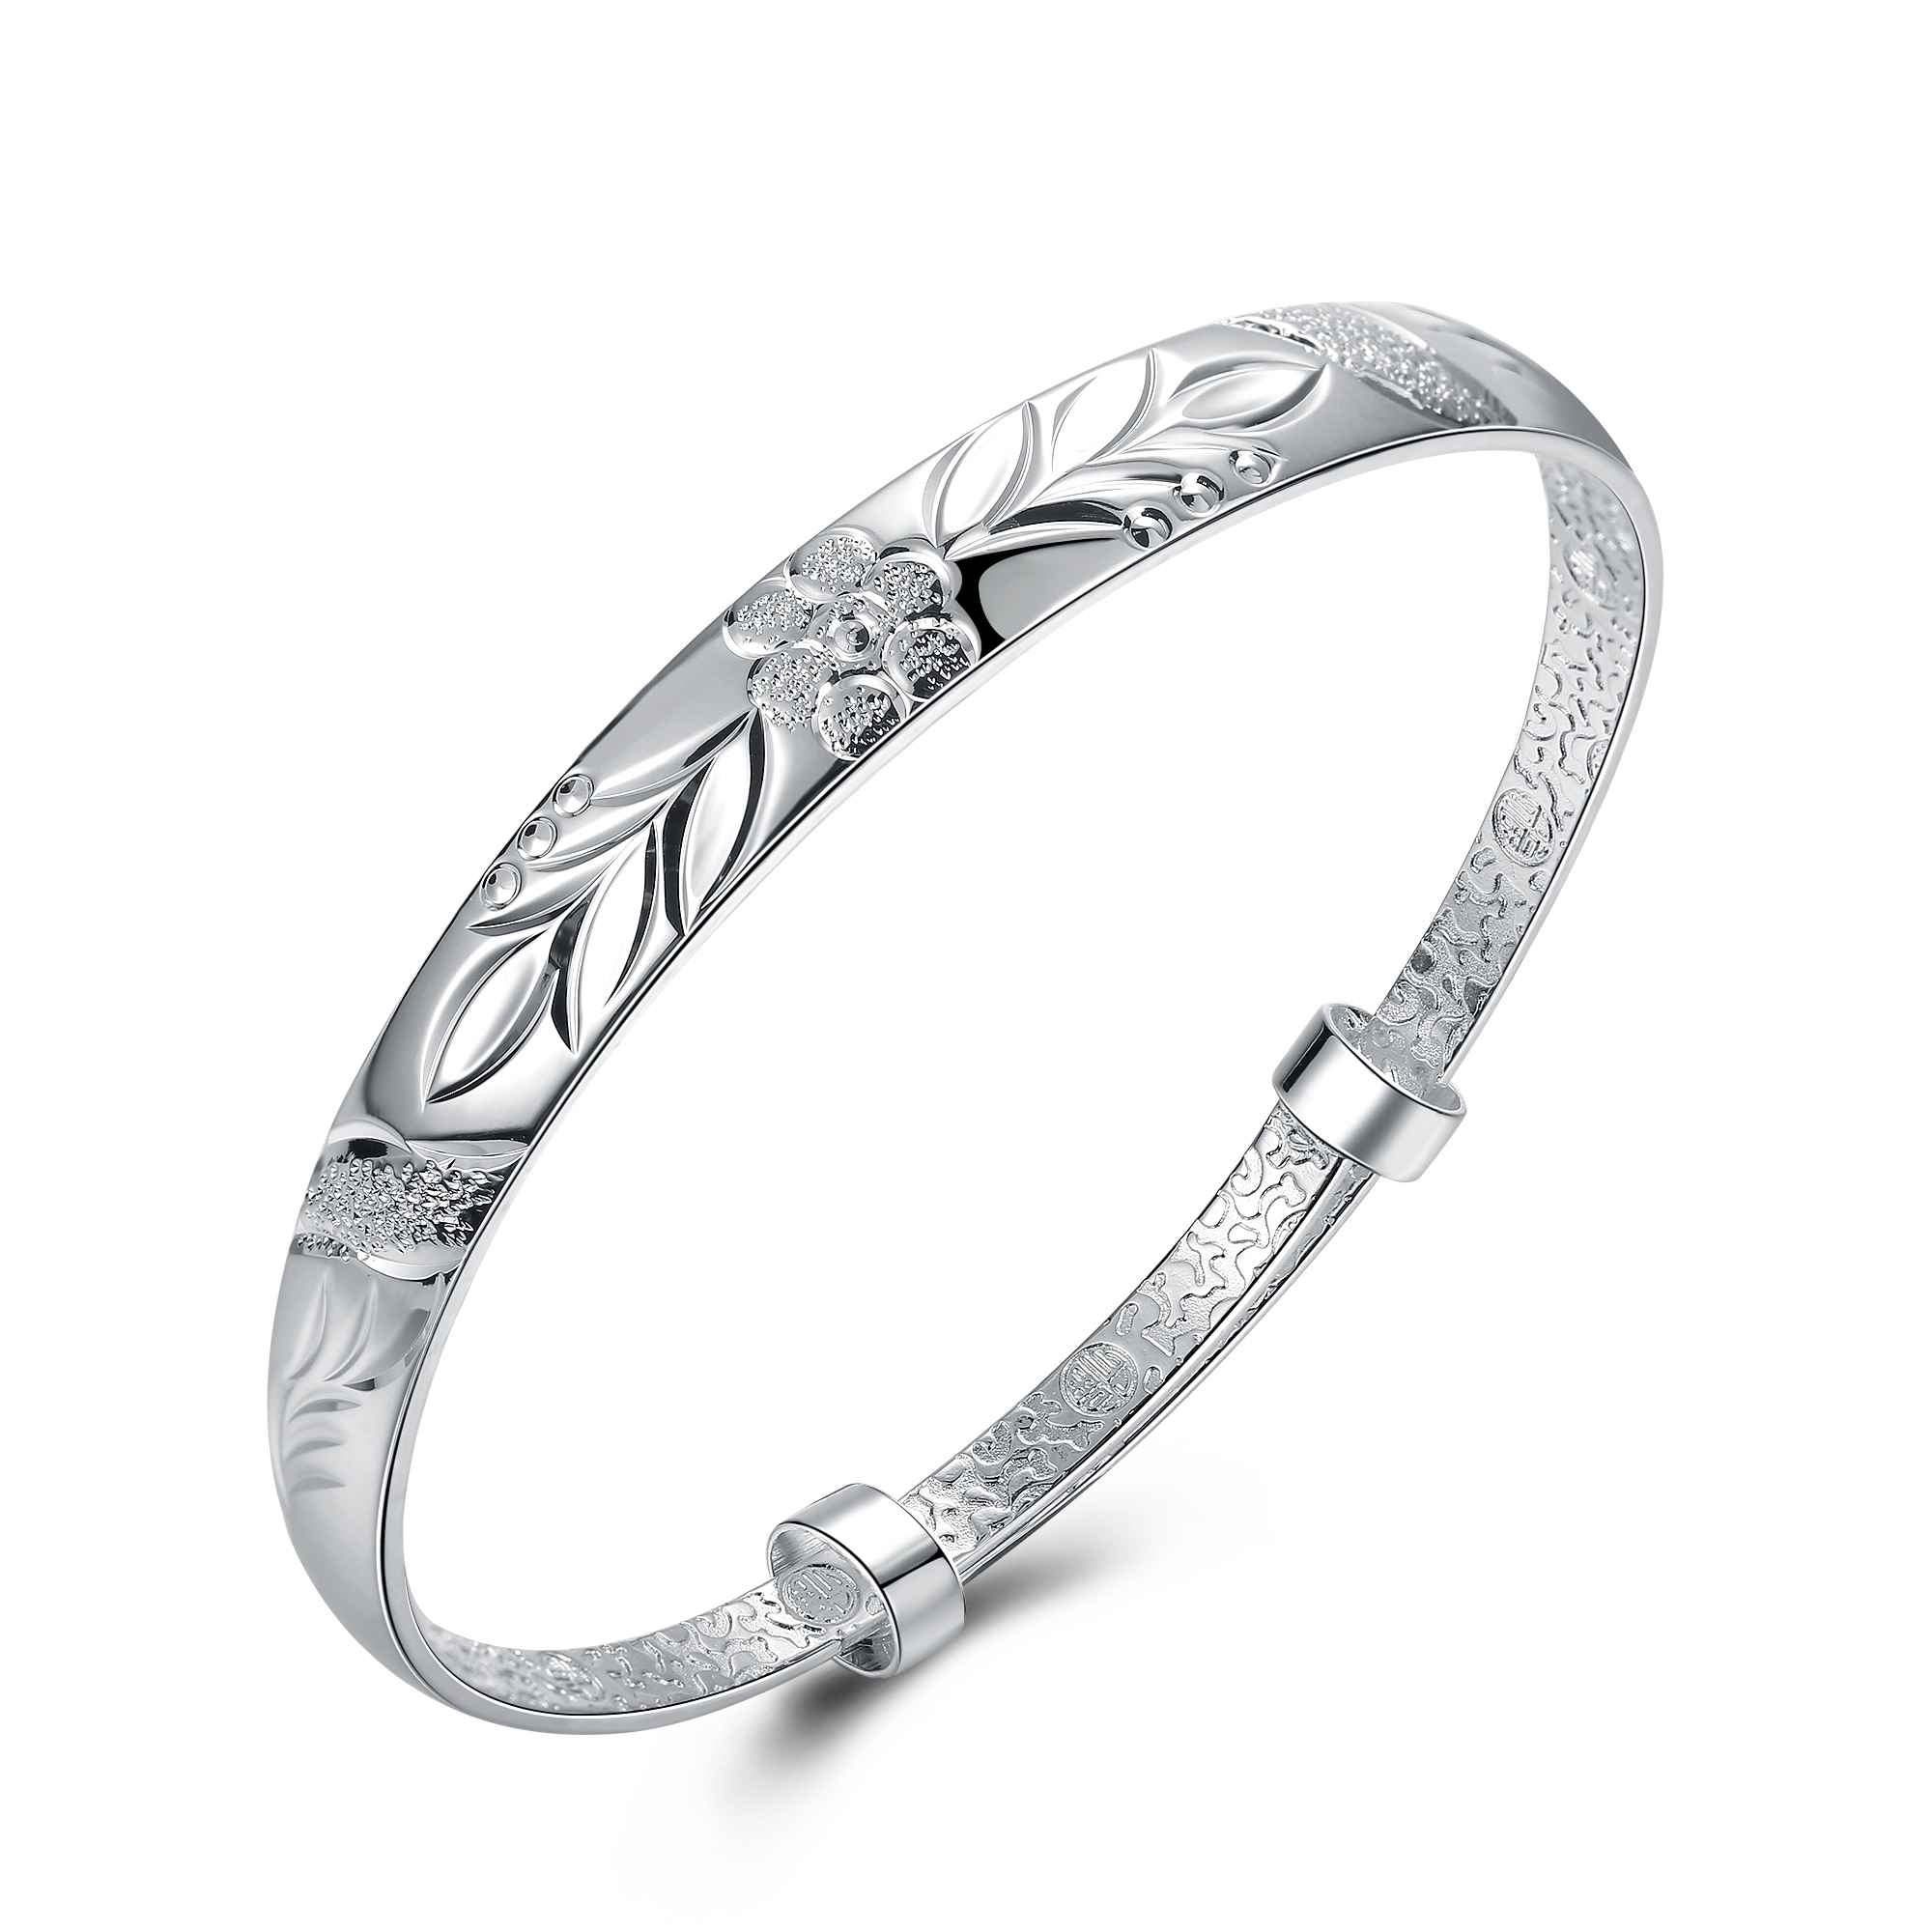 Hot Sell Fashion Silver Plated Fashion Bangle Bracelet For